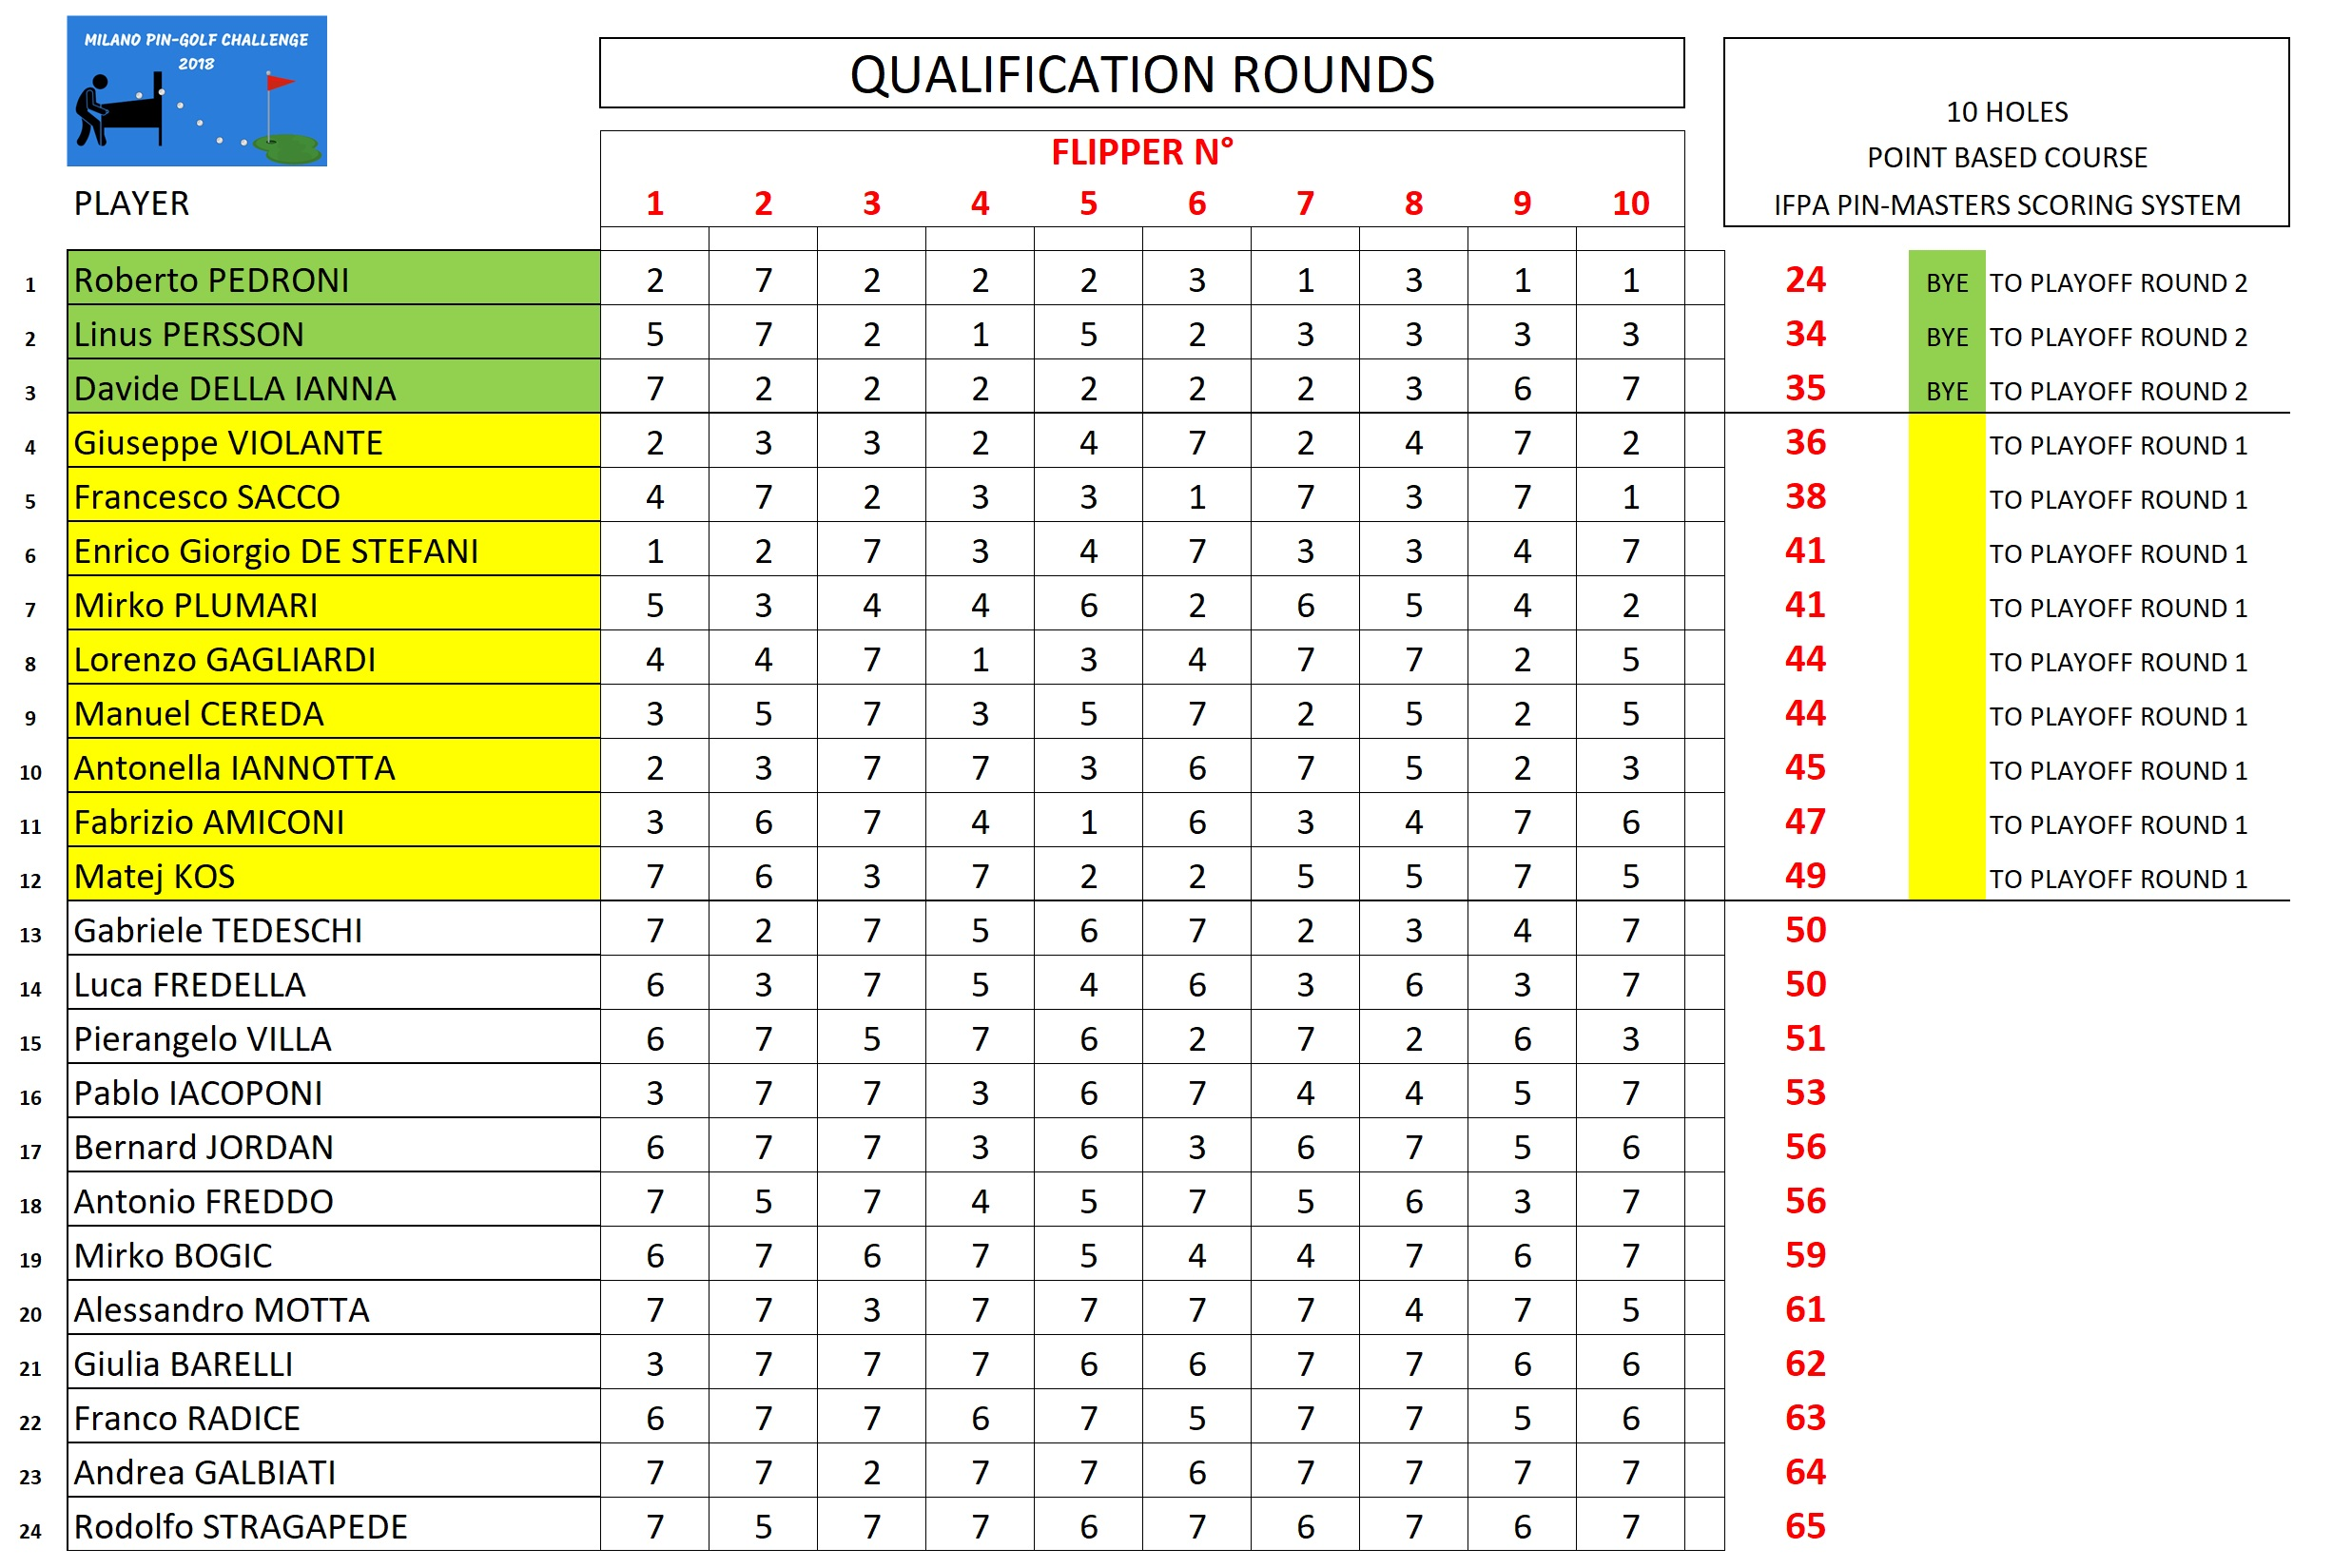 Qualification resultsjpg